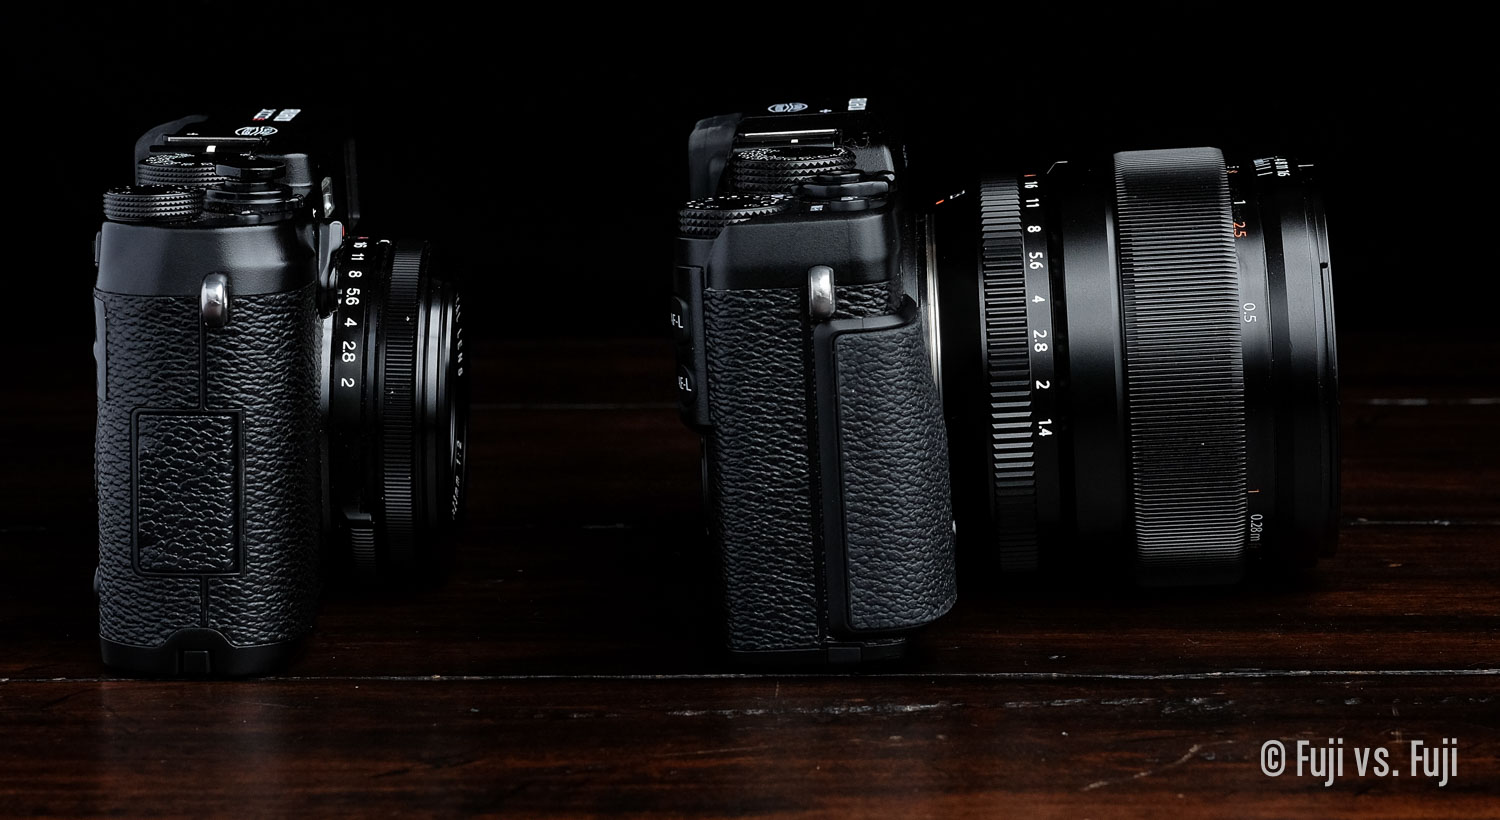 The23mm f/1.4 is large enough that it doesn't let an X-E camera sit flat. It's also enormous next to the X100S.